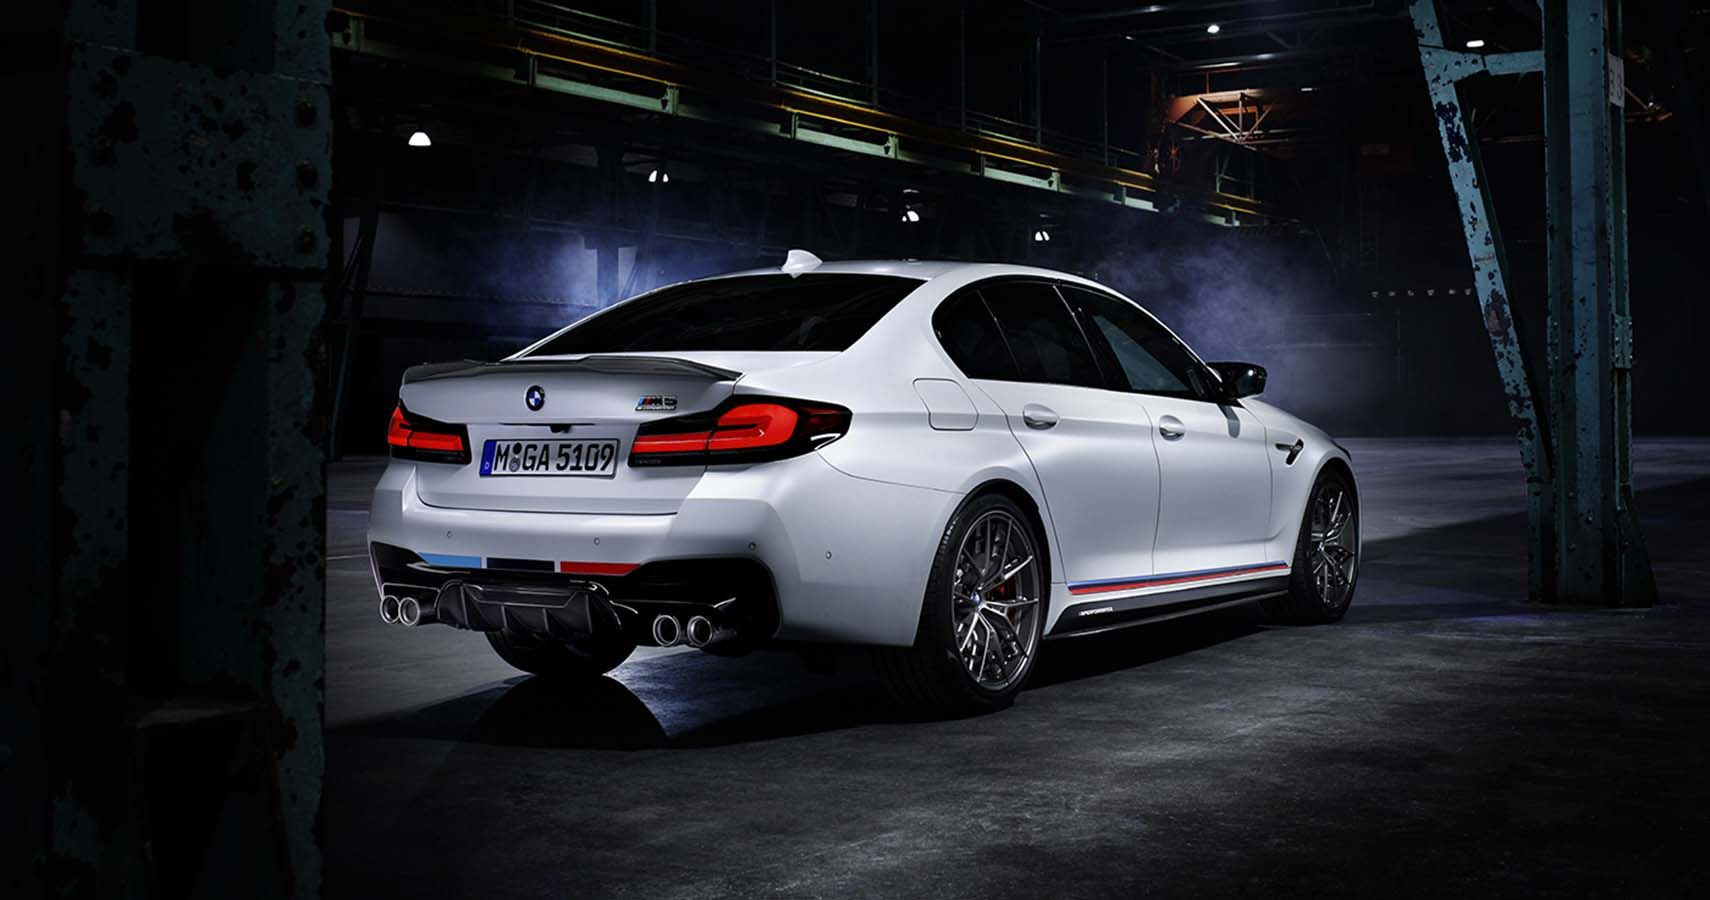 2021 BMW M5: What We Expect From The Super Sedan | HotCars